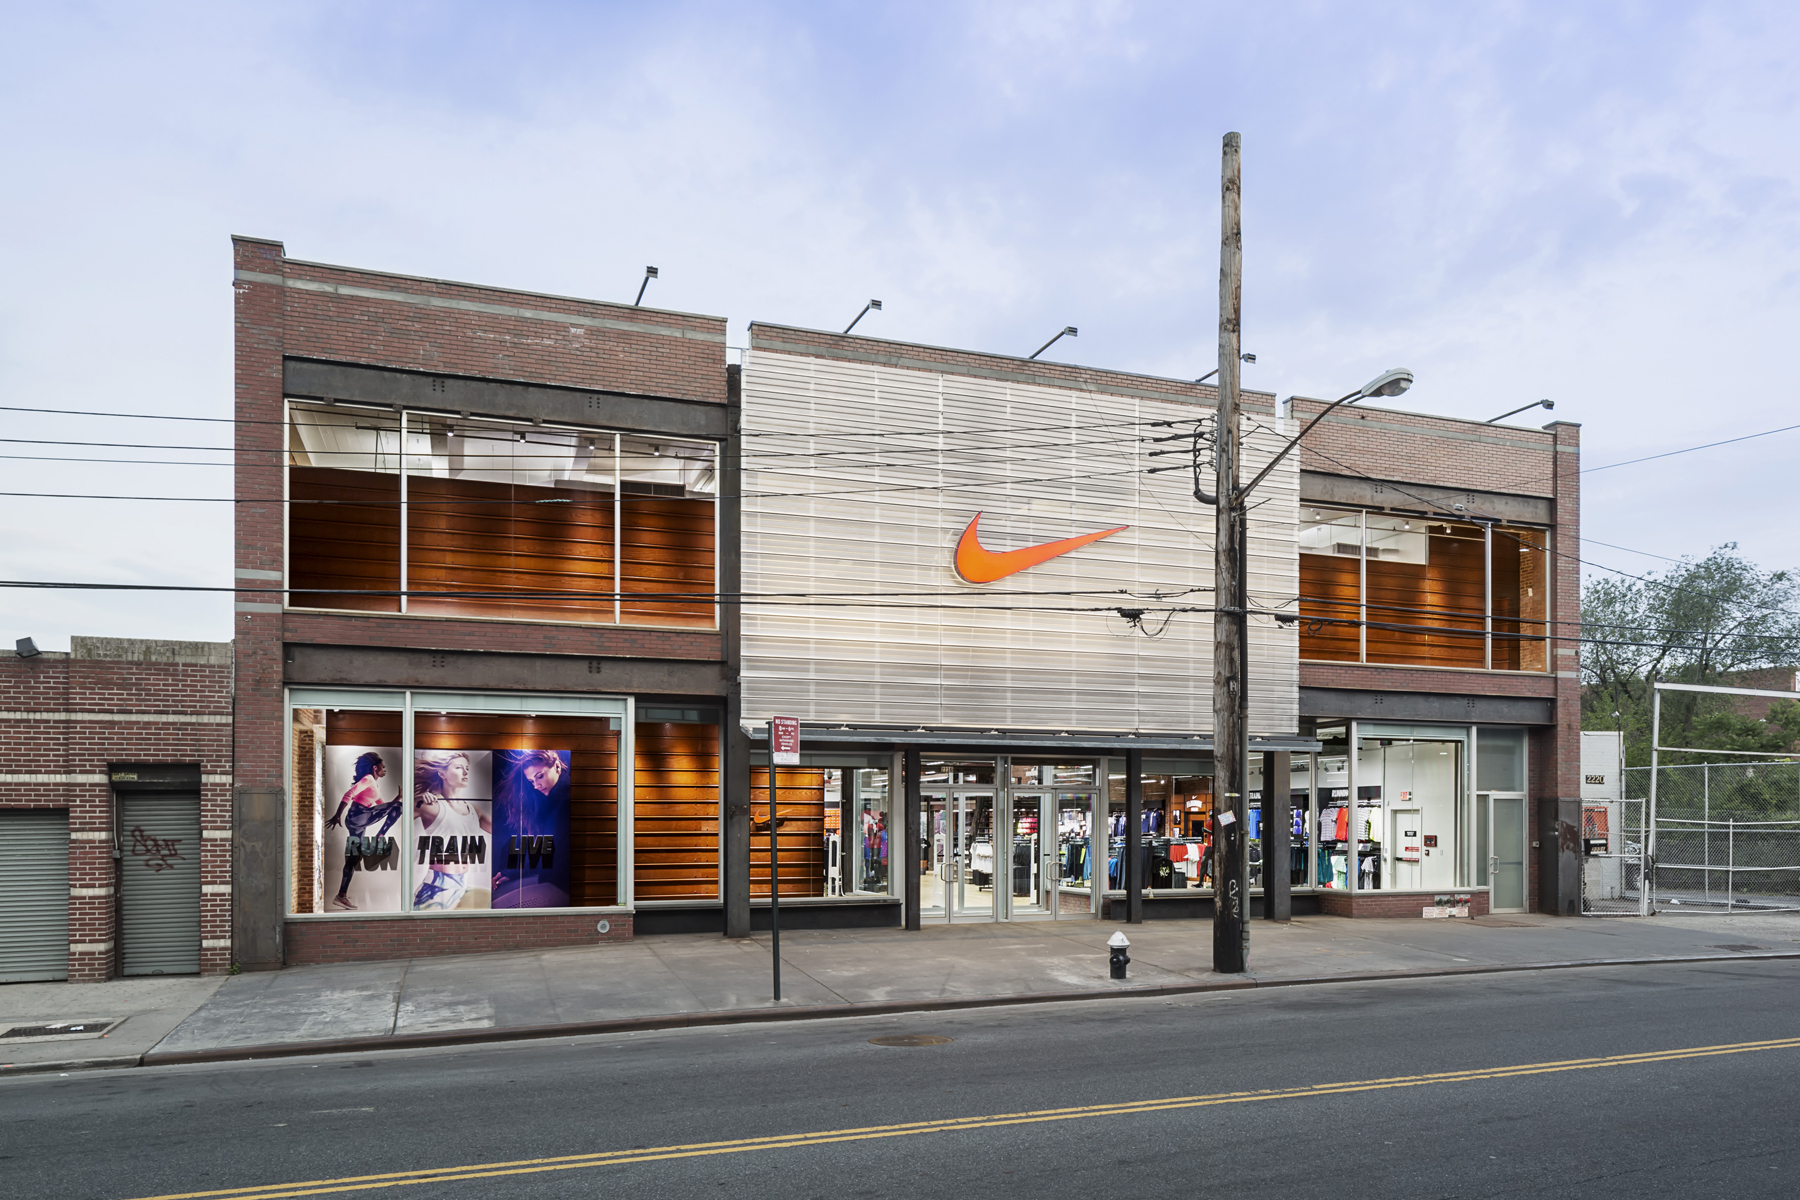 Nike Factory Store store or outlet store located in Deer Park, New York - Tanger Outlets Deer Park location, address: The Arches Circle, Deer Park, New York - NY Find information about hours, locations, online information and users ratings and reviews. Save money on Nike Factory Store and find store or outlet near me.3/5(1).